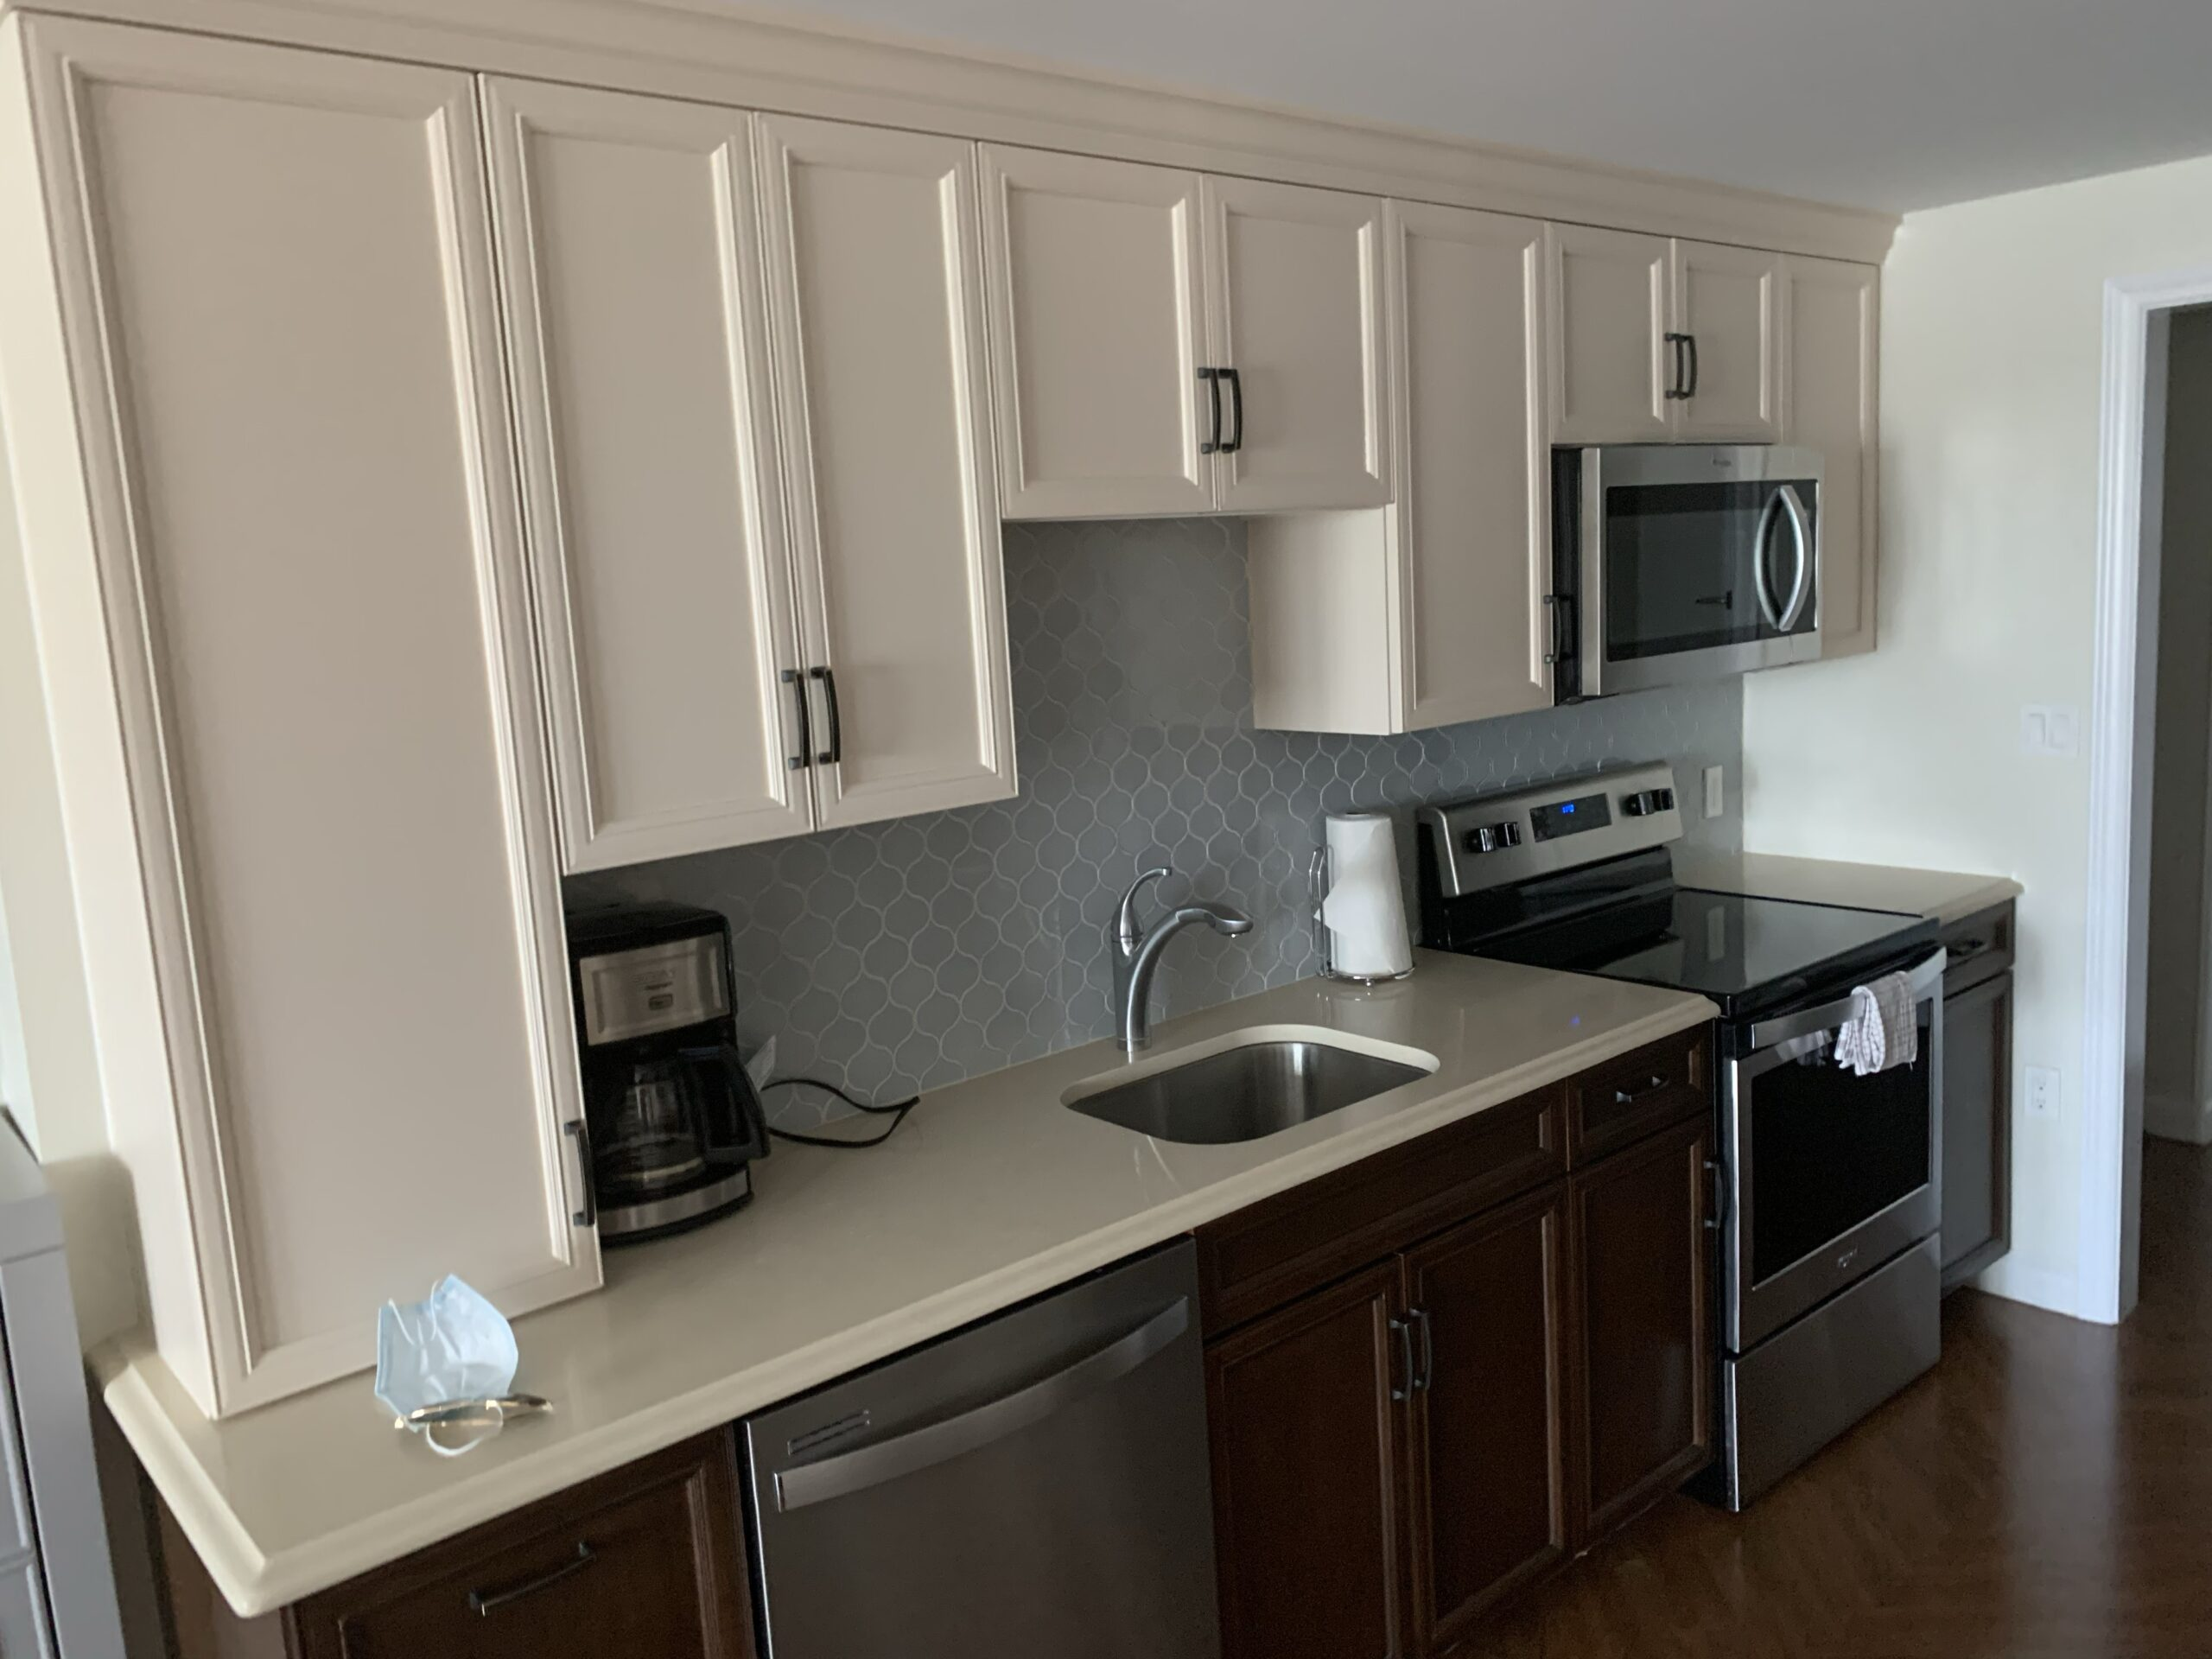 kitchen with beige countertop and hanging cabinets and dark brown under the sink storage